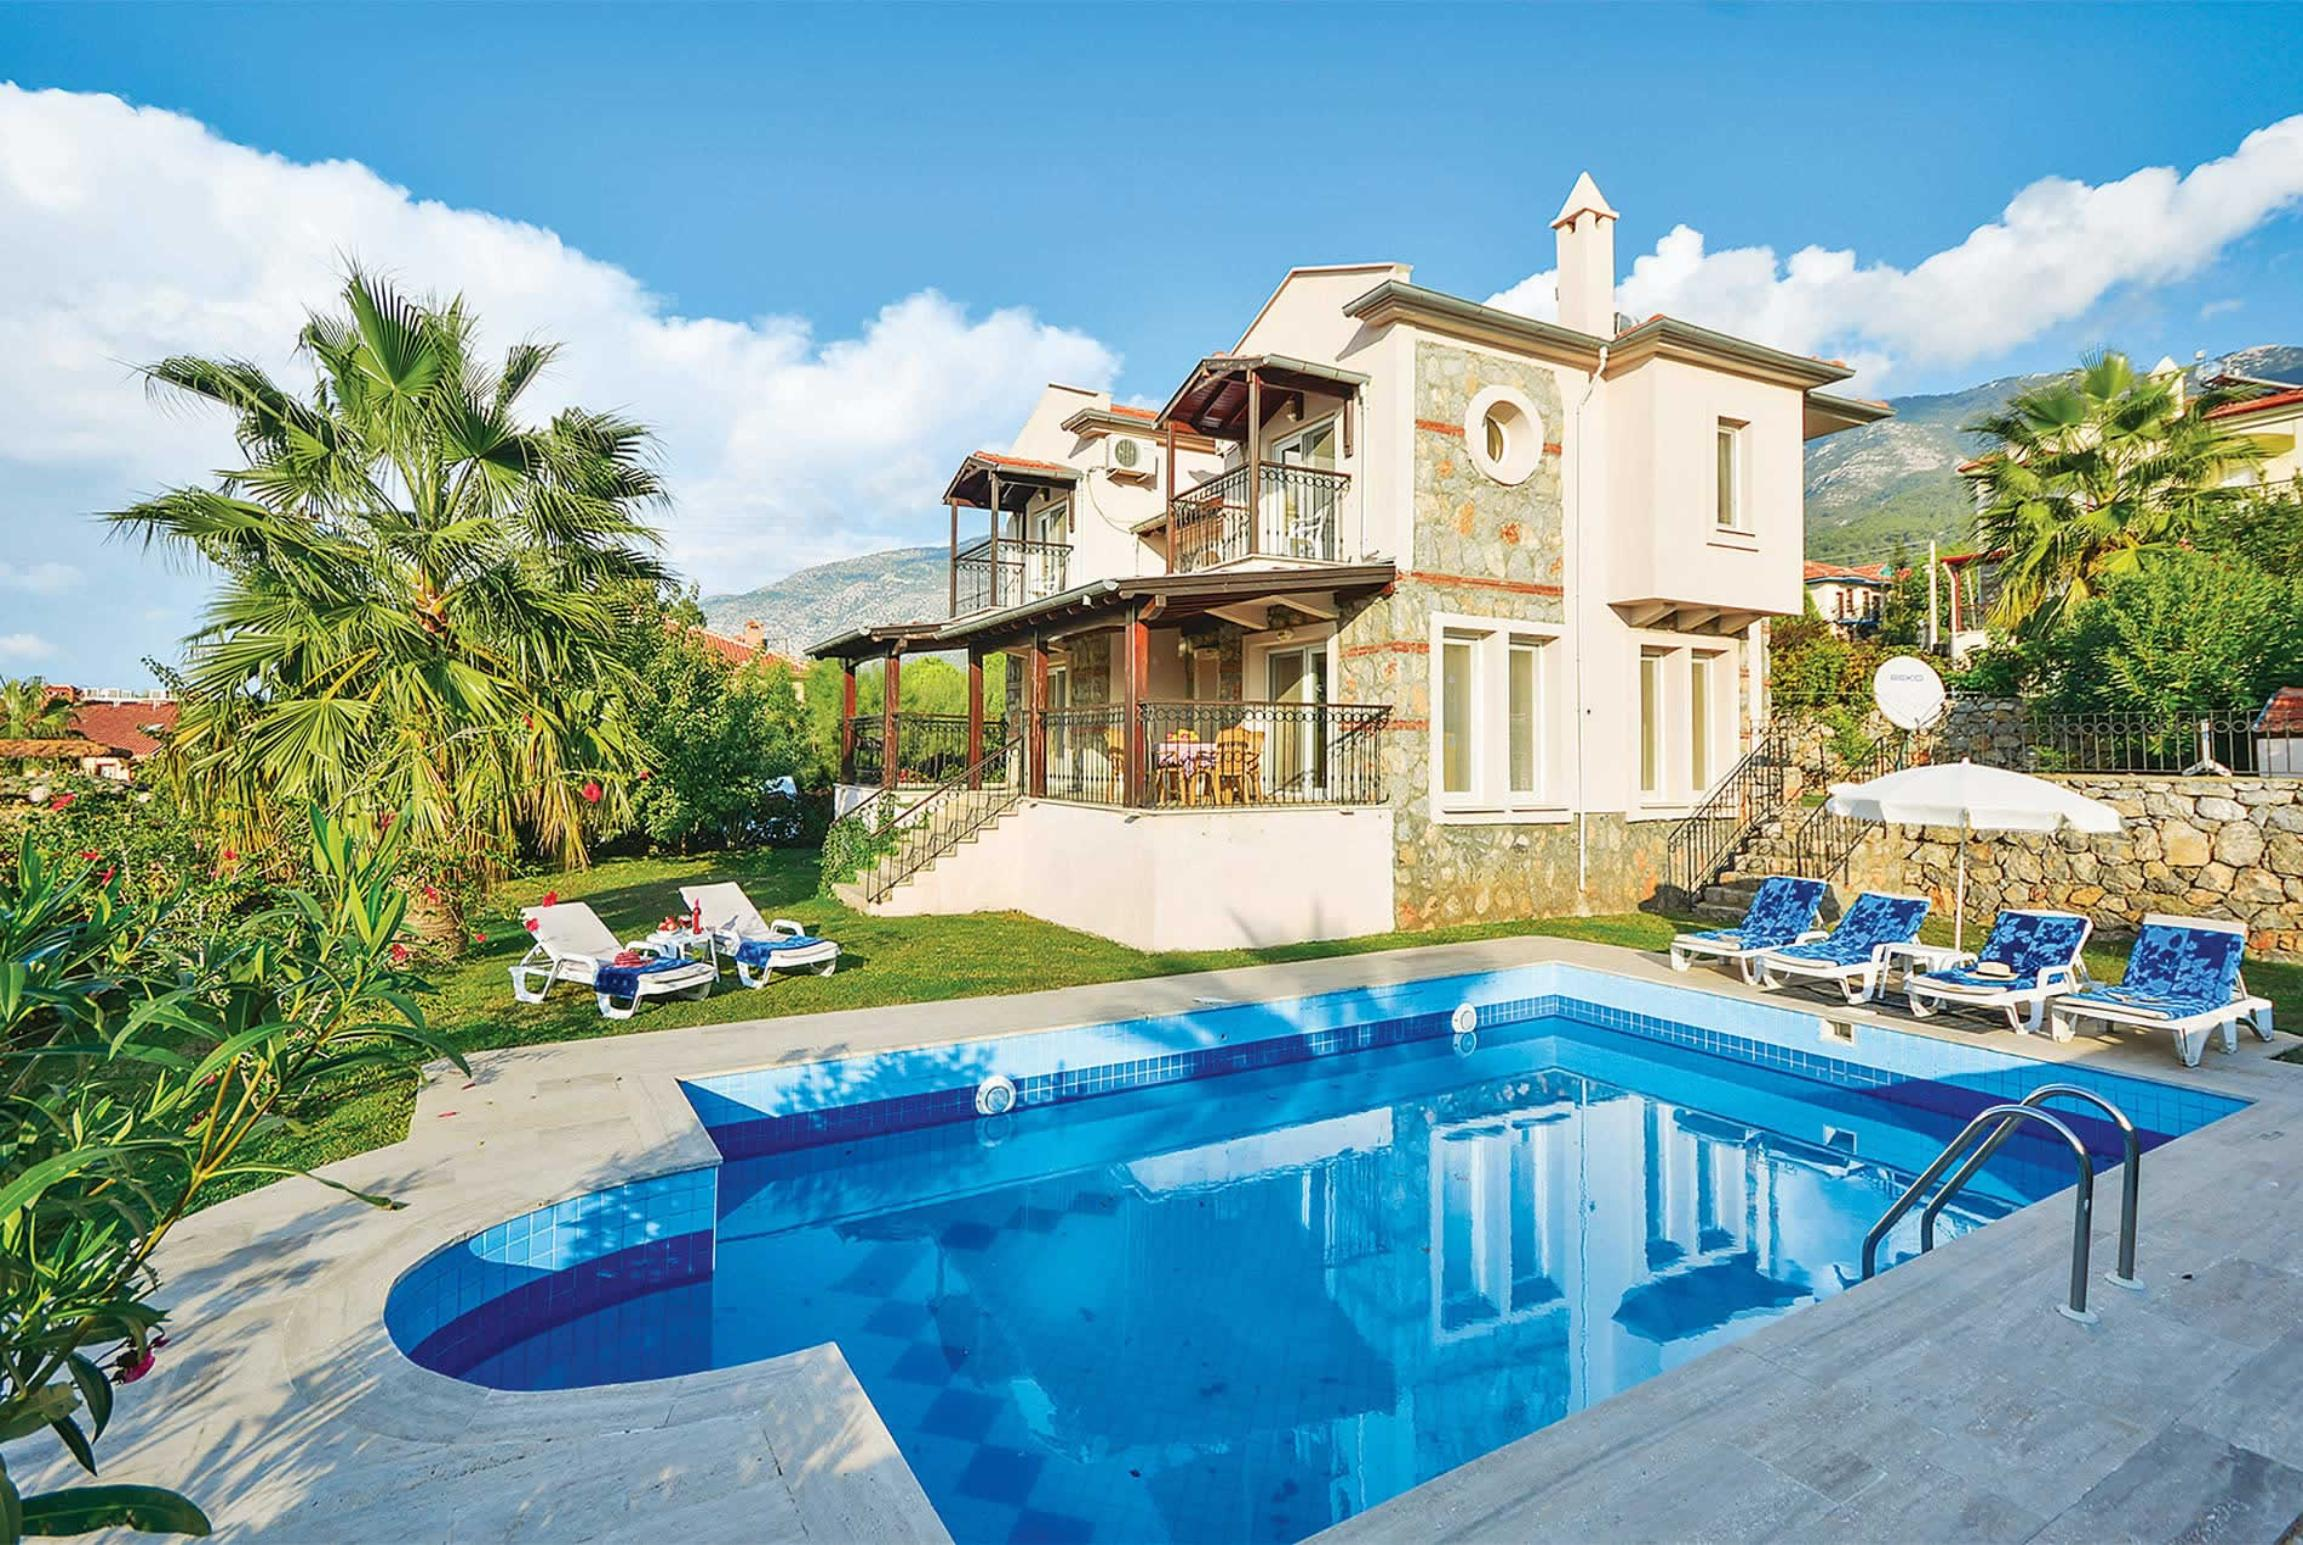 Read more about Fiesta villa